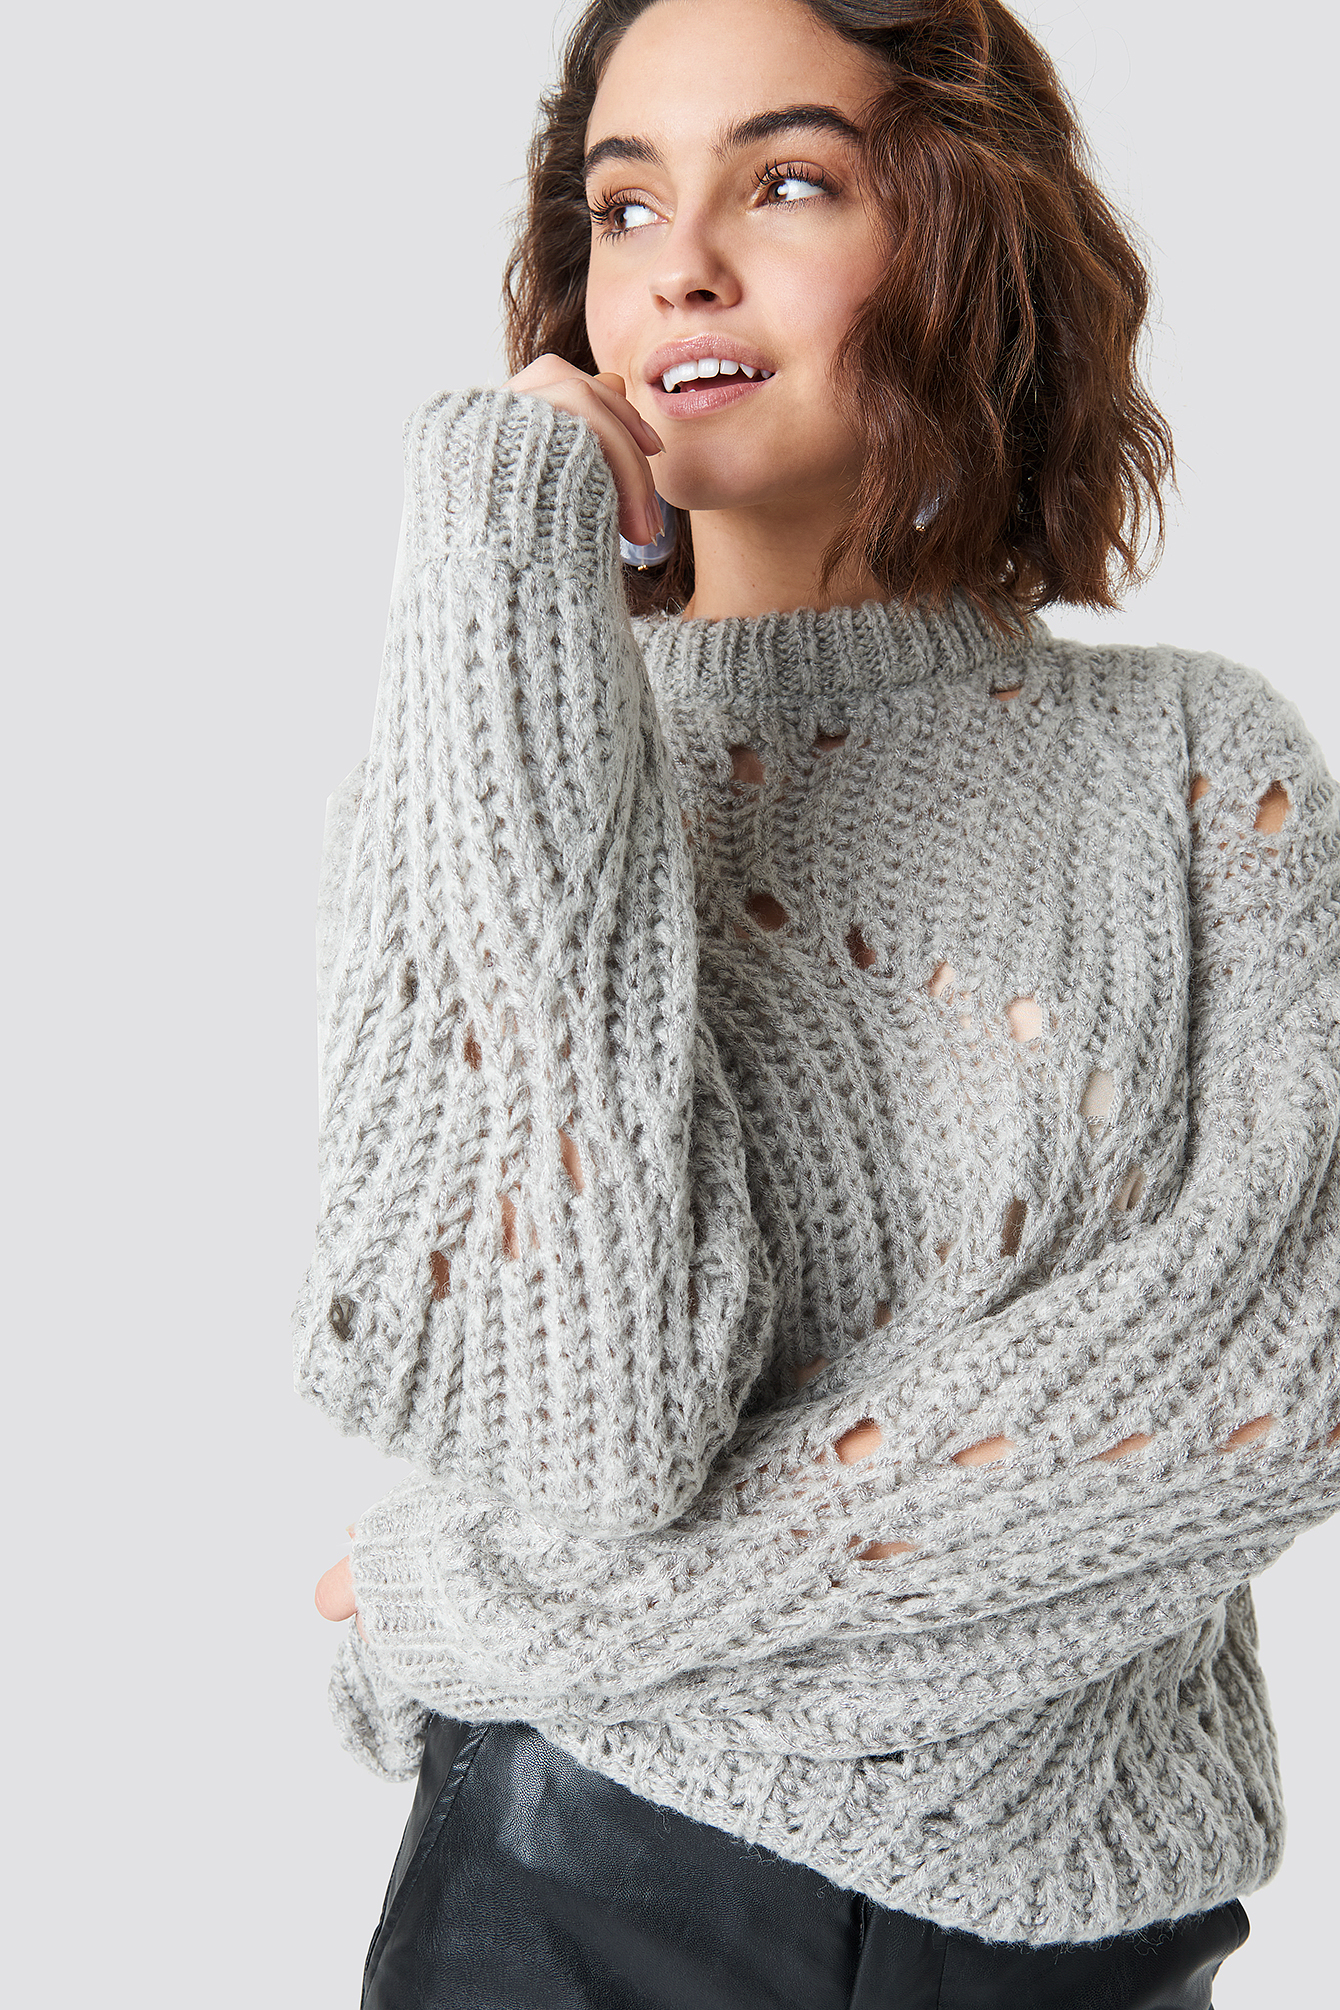 FIOLINA SWEATER - GREY